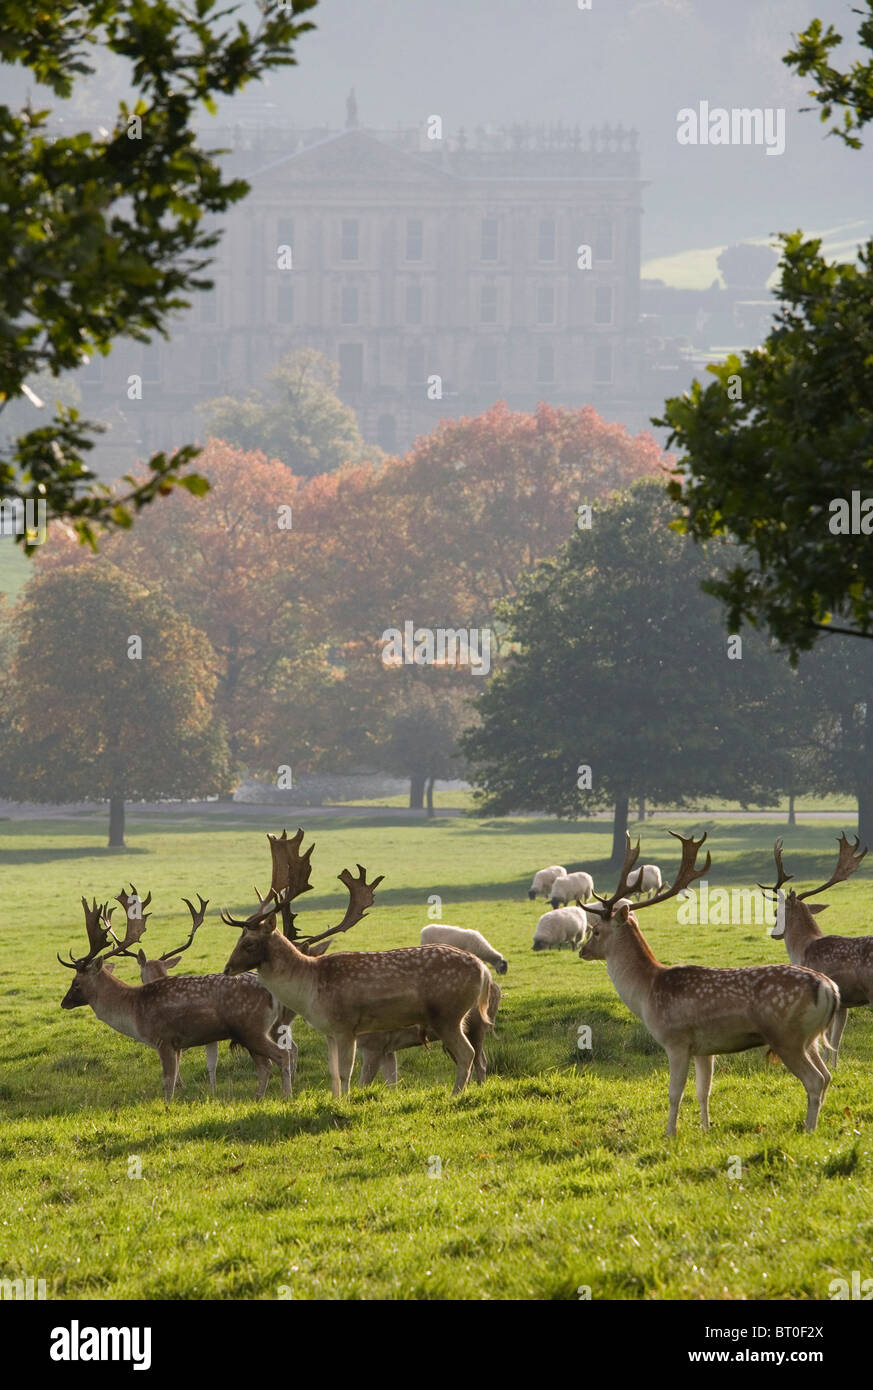 Autumn at Chatsworth with deer grazing in front of Chatsworth House, Derbyshire, England, UK - Stock Image